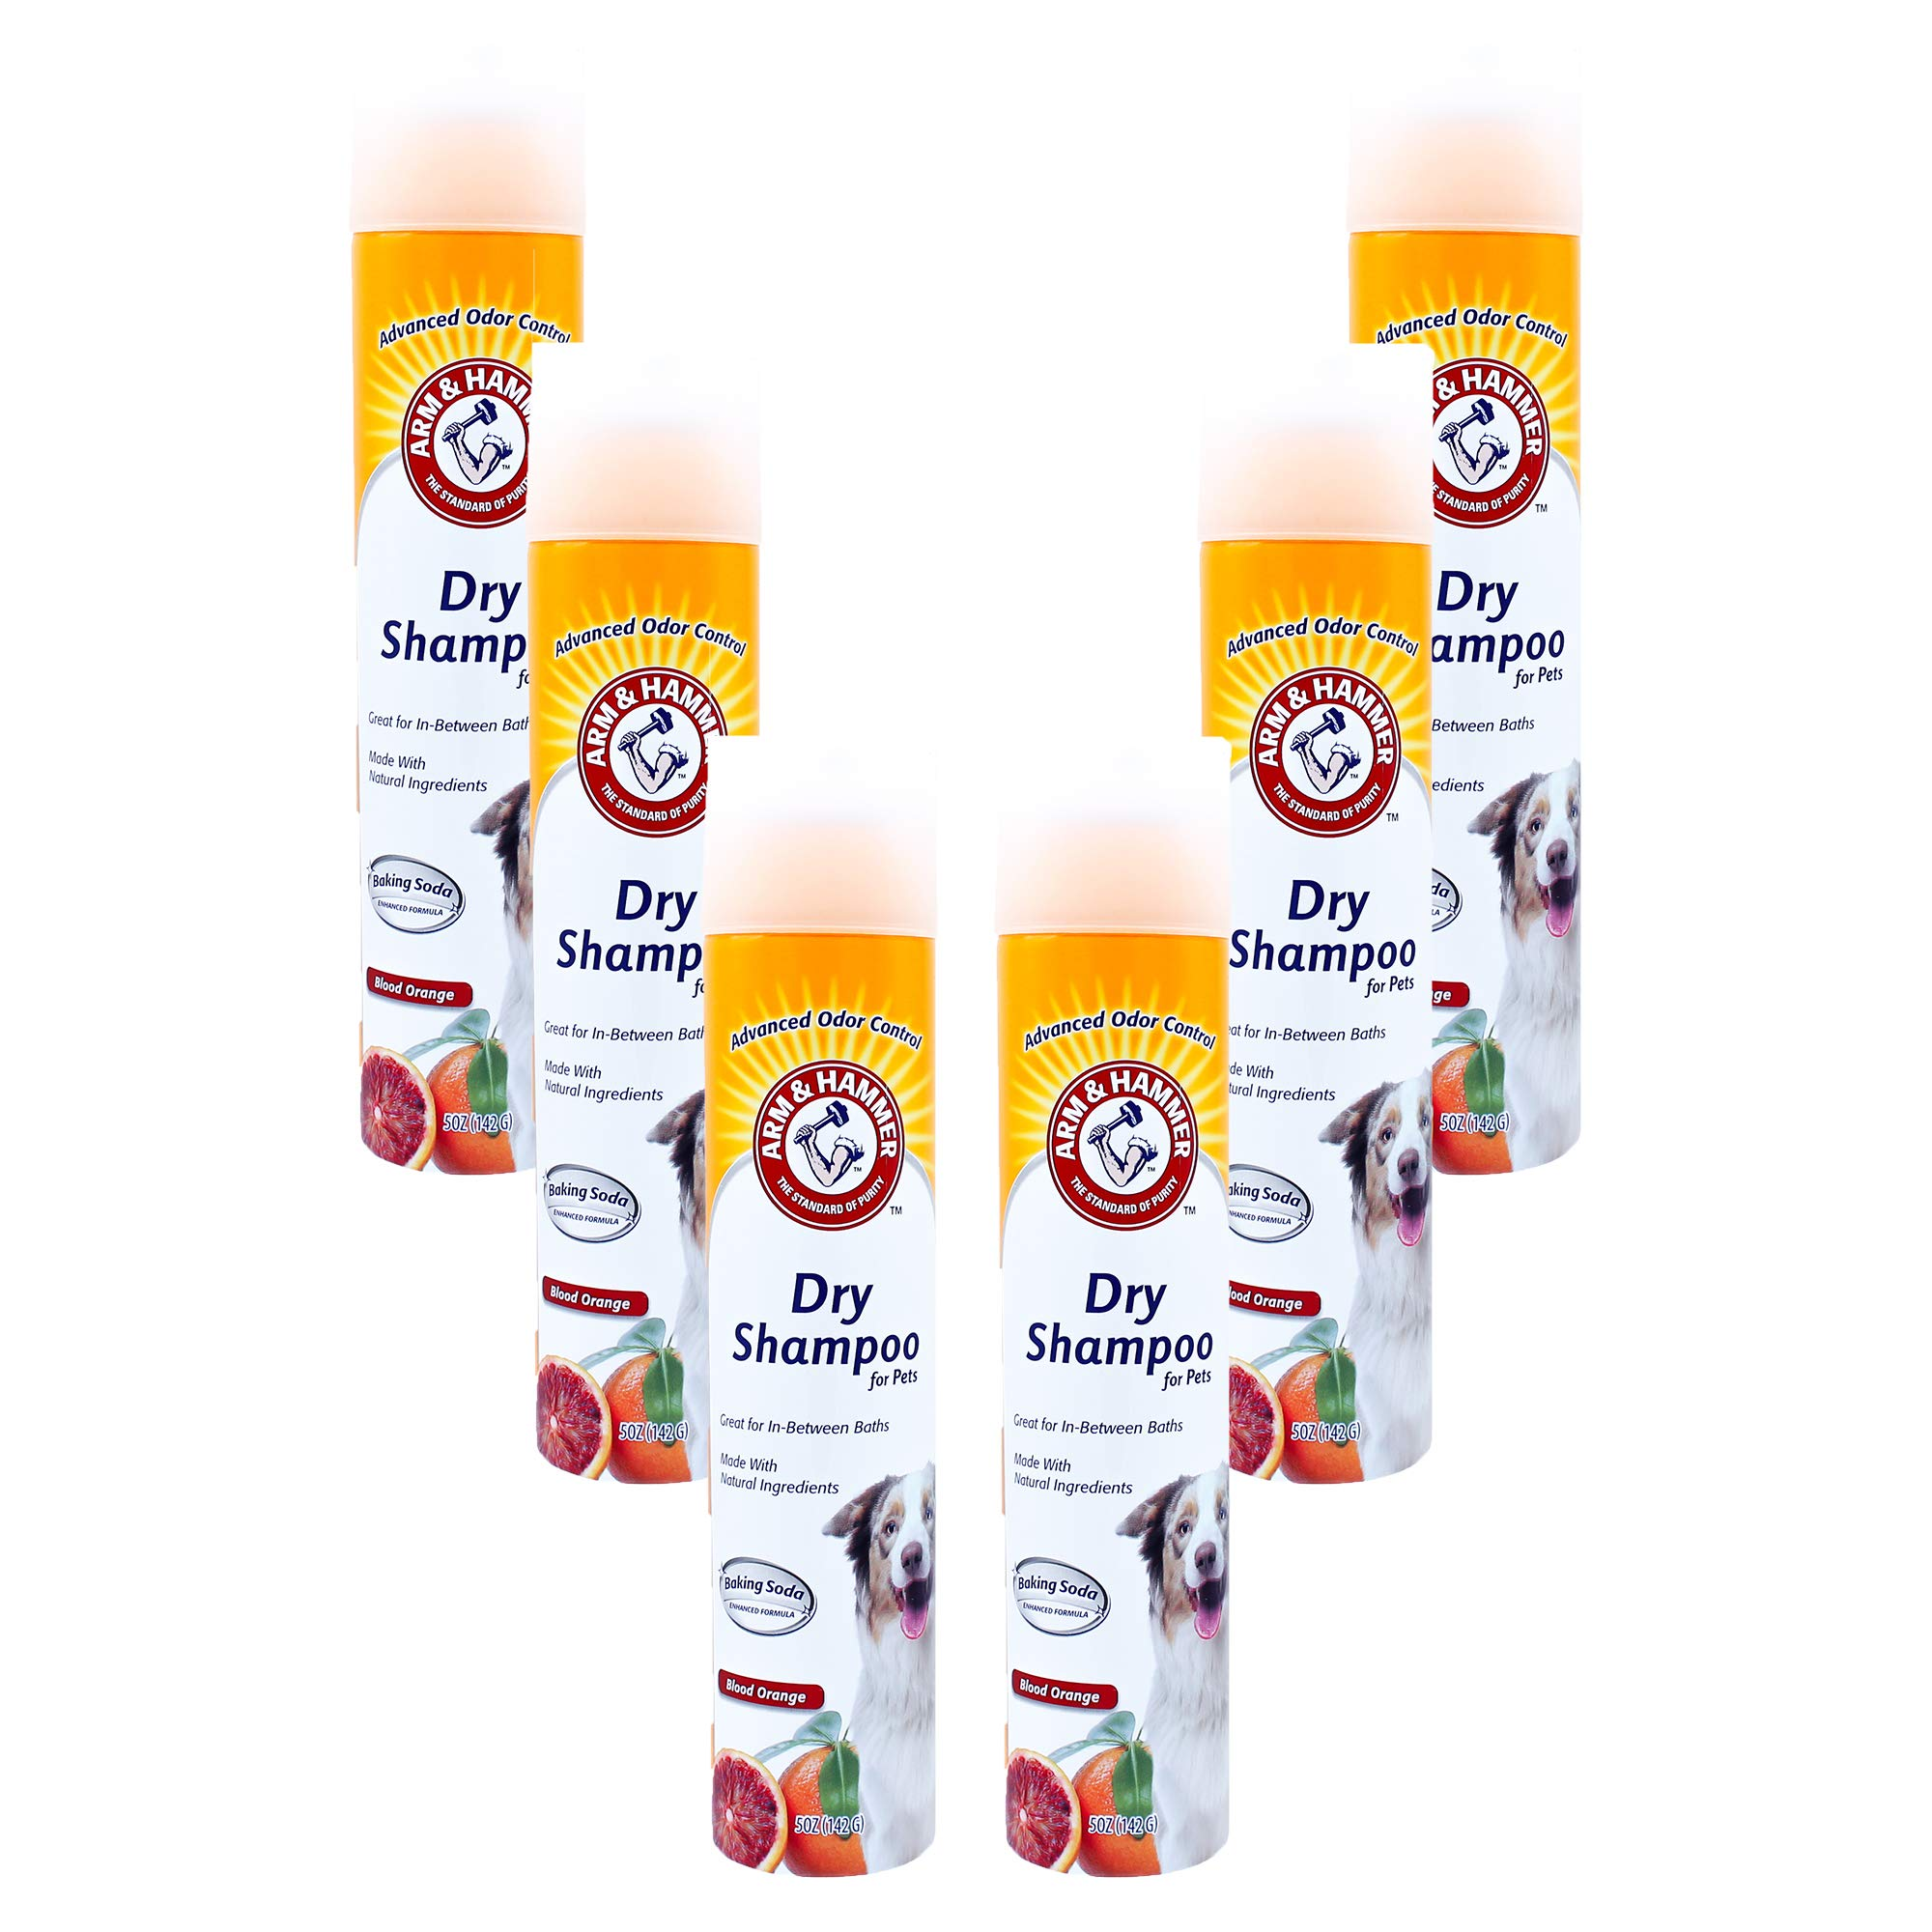 Arm & Hammer Aerosol Dry Shampoo for Dogs | Waterless Shampoo Spray for Dogs & Puppies | Blood Orange, 5 Ounces - 6 Pack by ARM & HAMMER